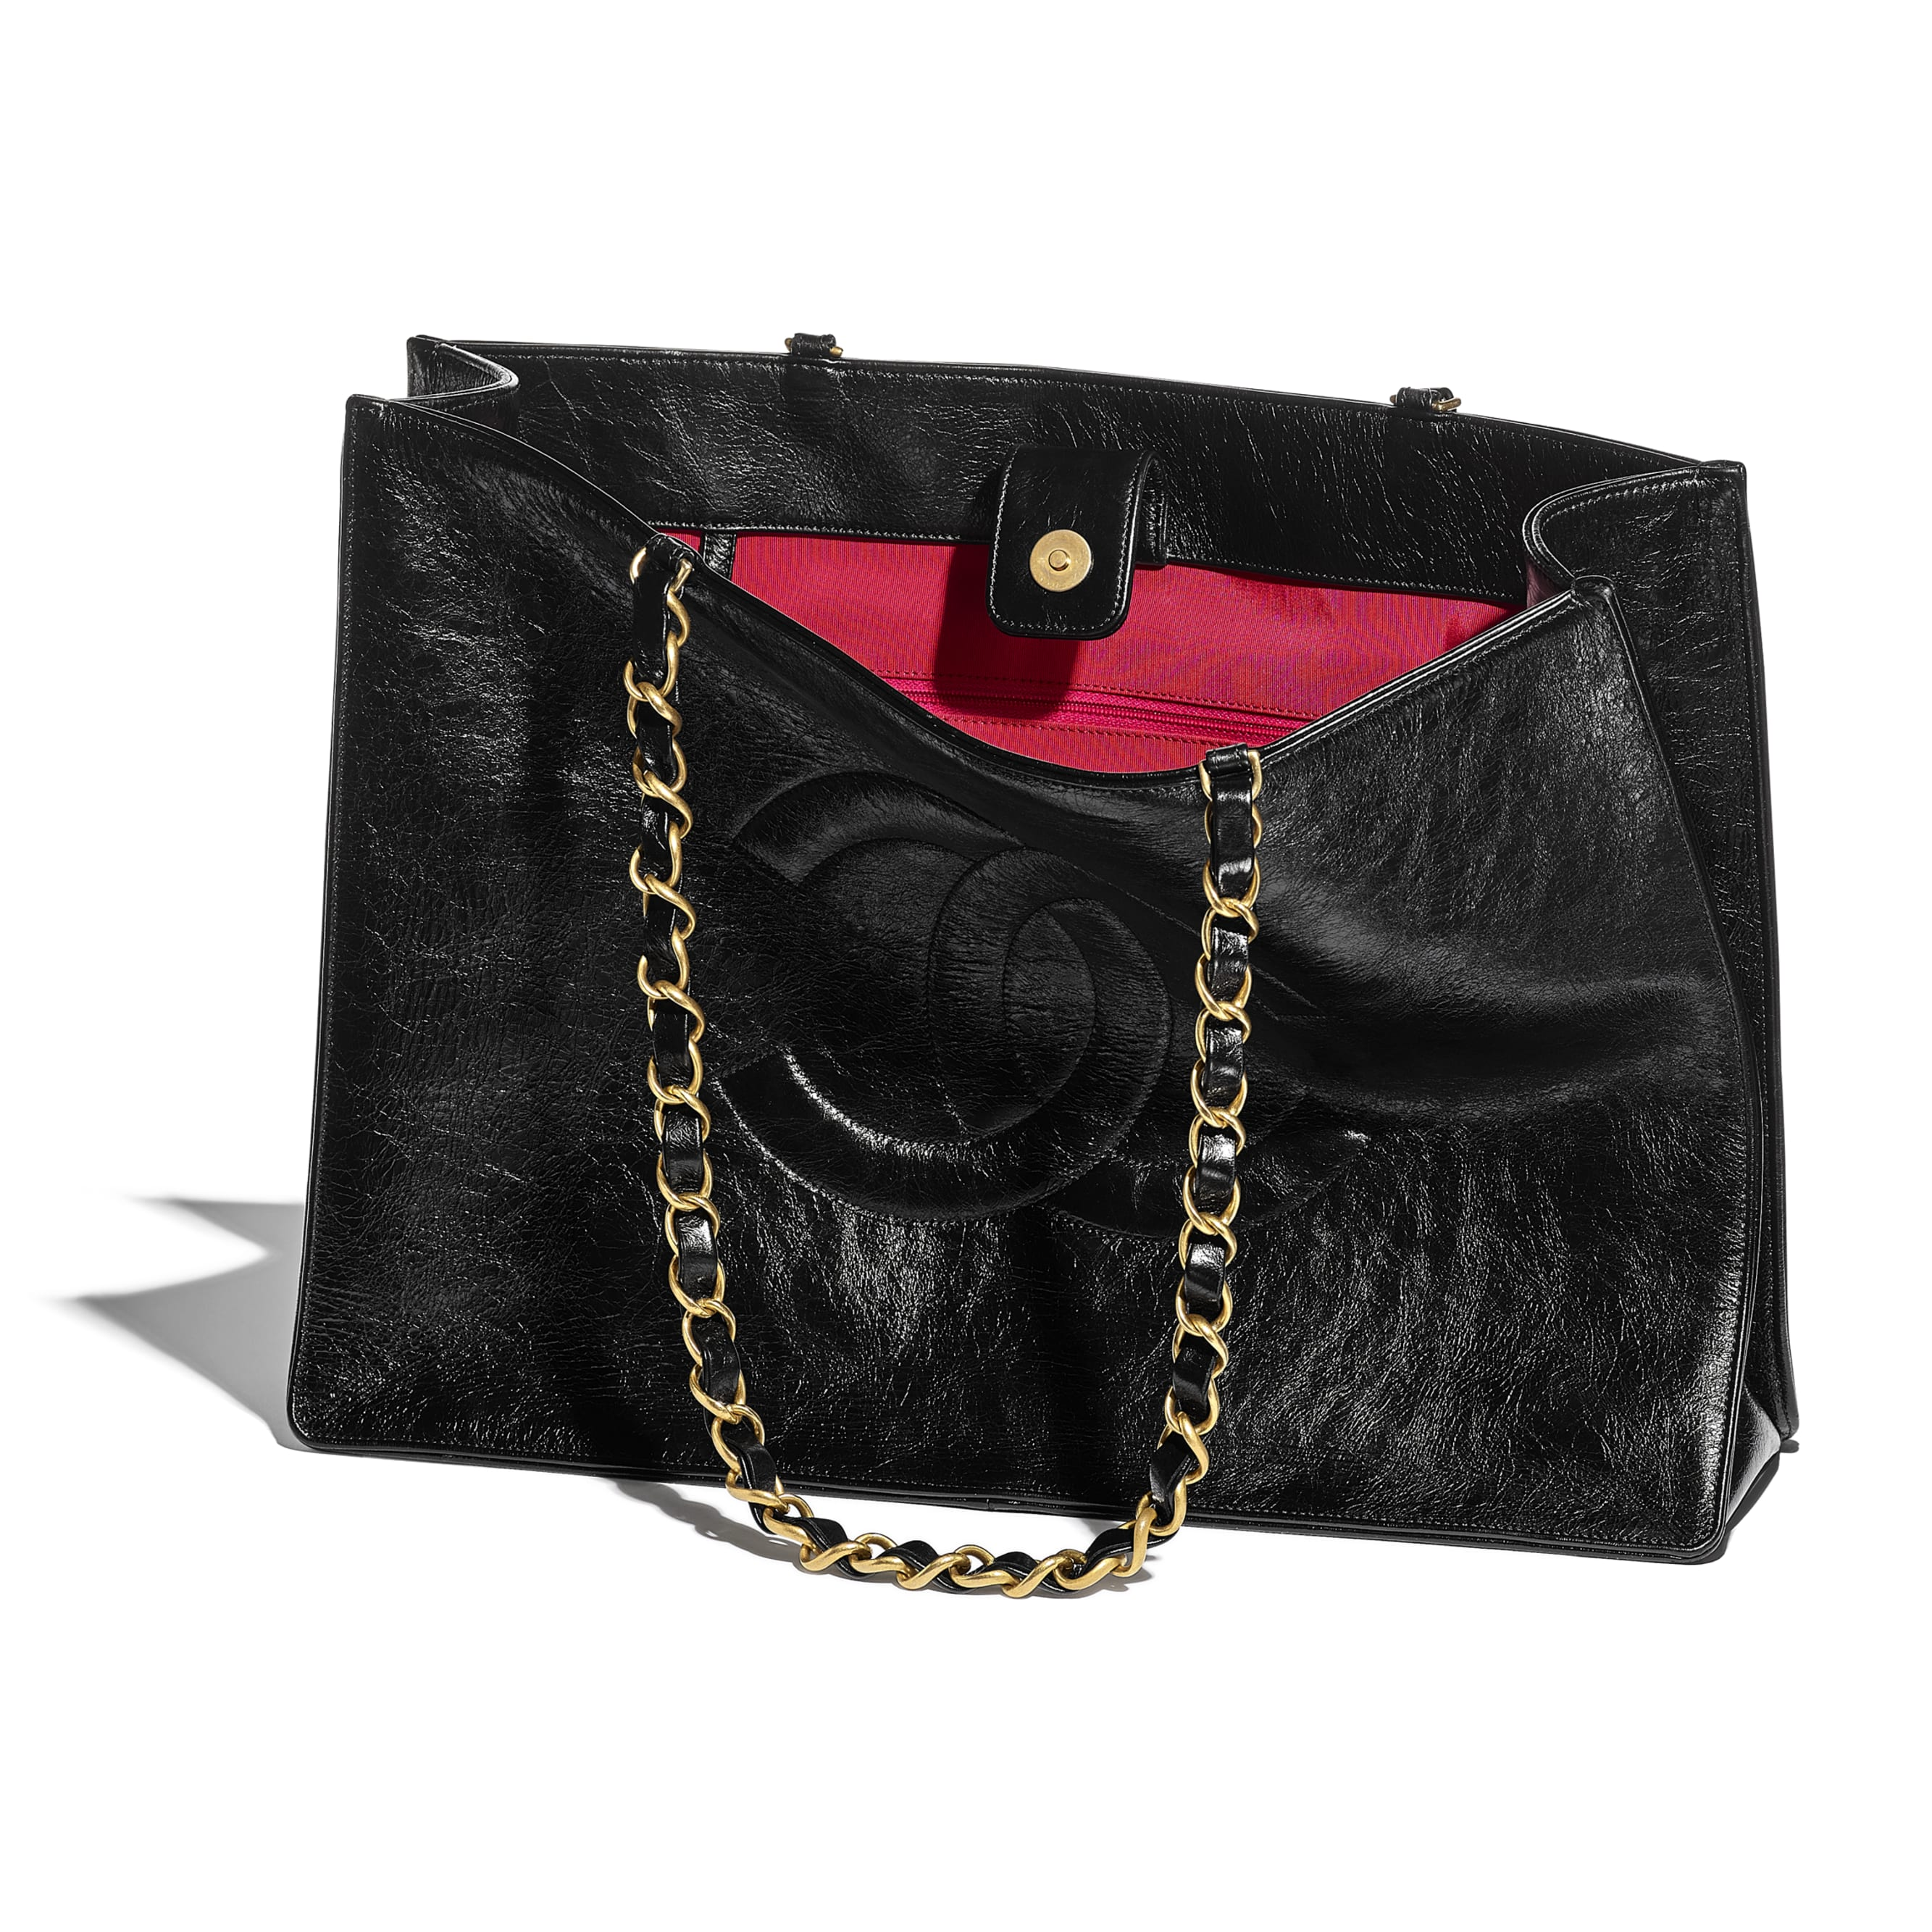 Large Shopping Bag - Black - Shiny Aged Calfskin & Gold-Tone Metal - CHANEL - Other view - see standard sized version